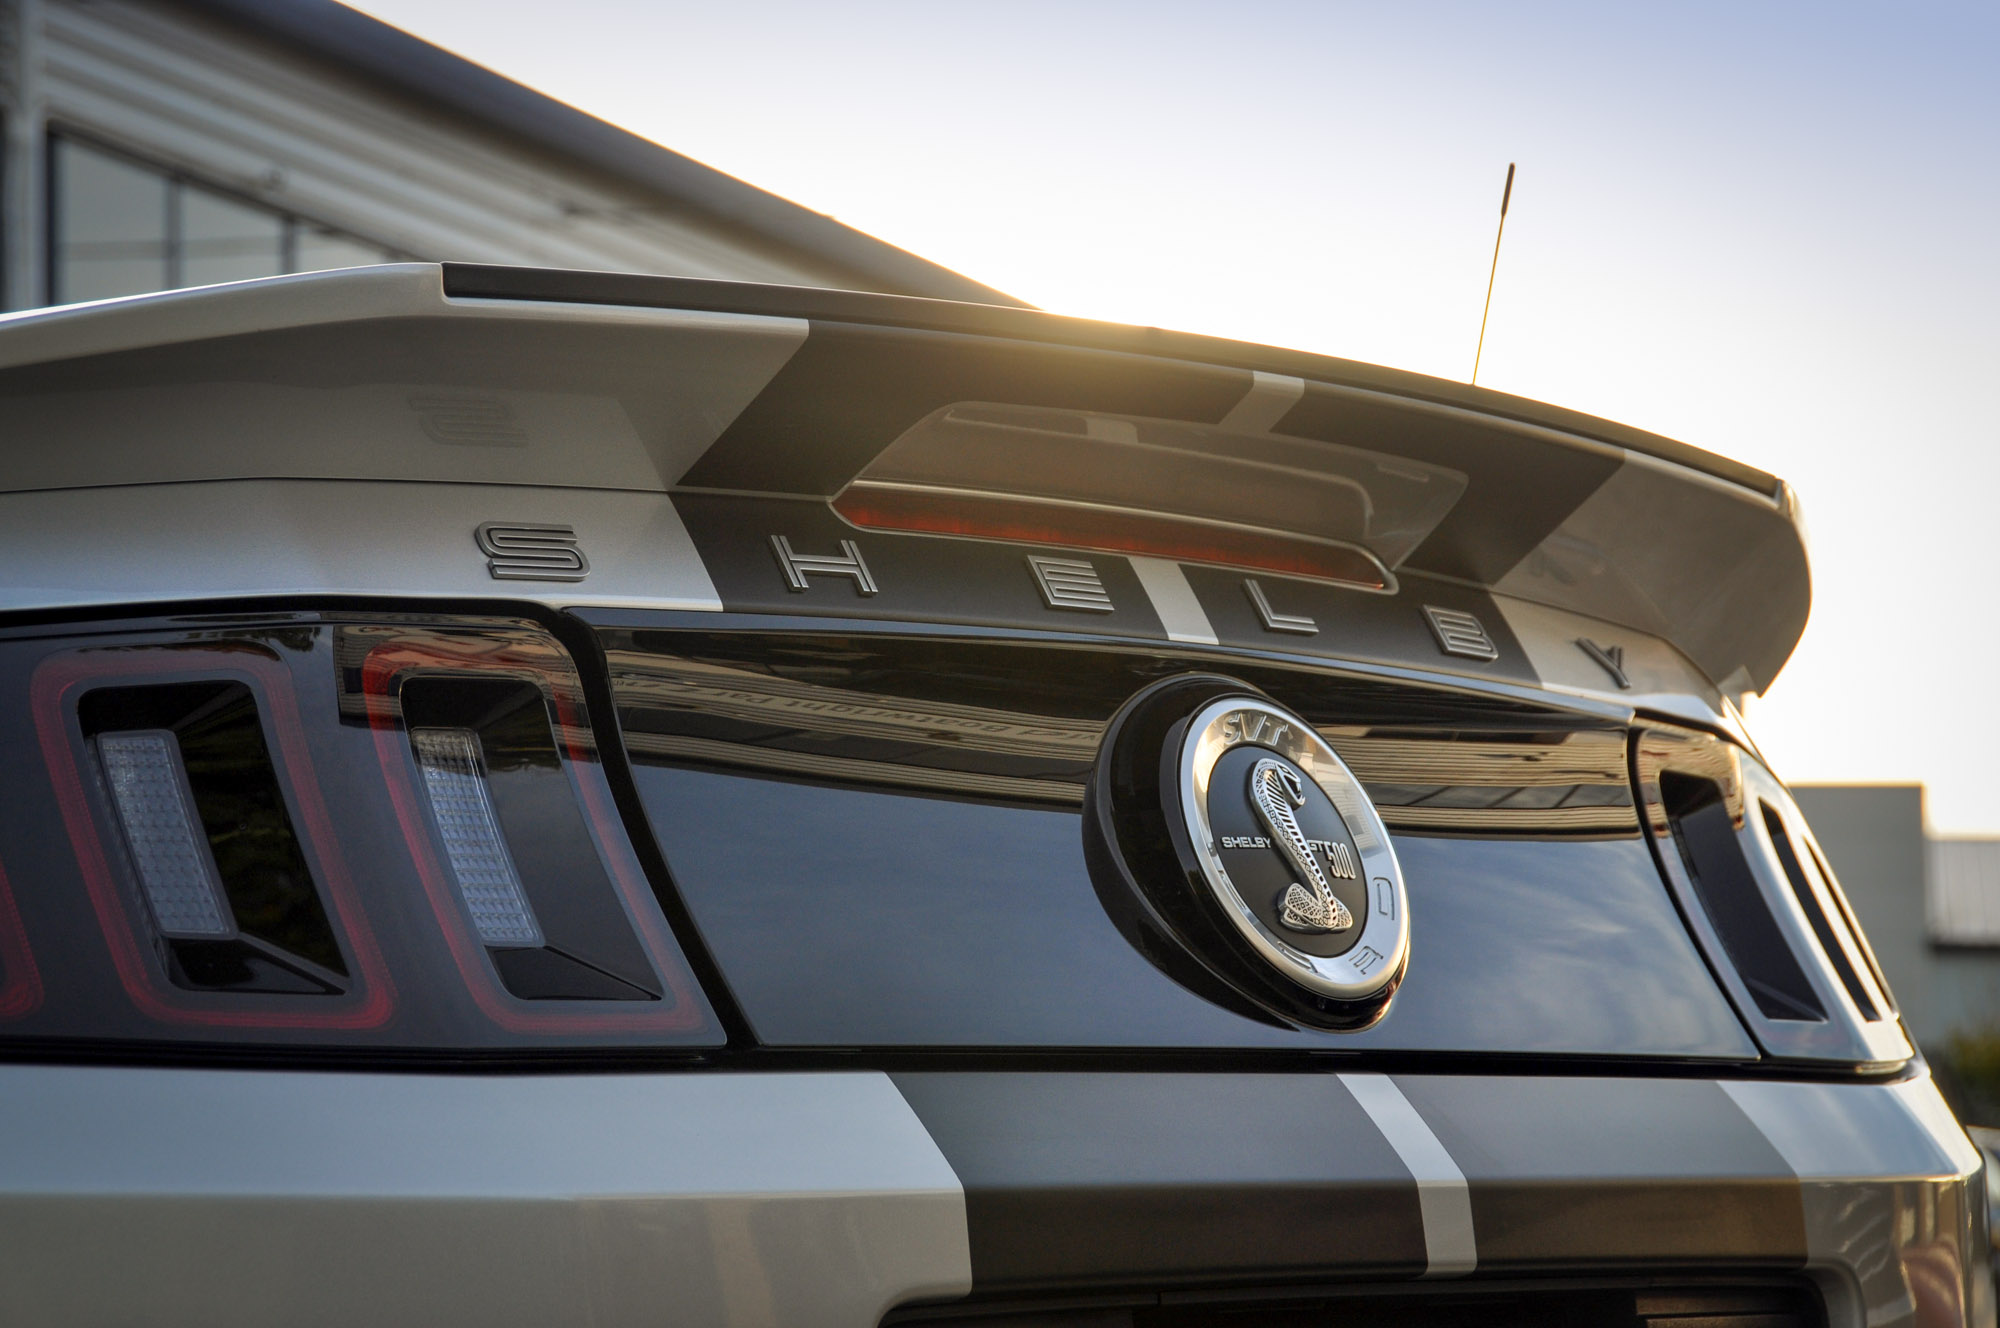 2014 Ford Mustang Shelby GT500 for sale UK